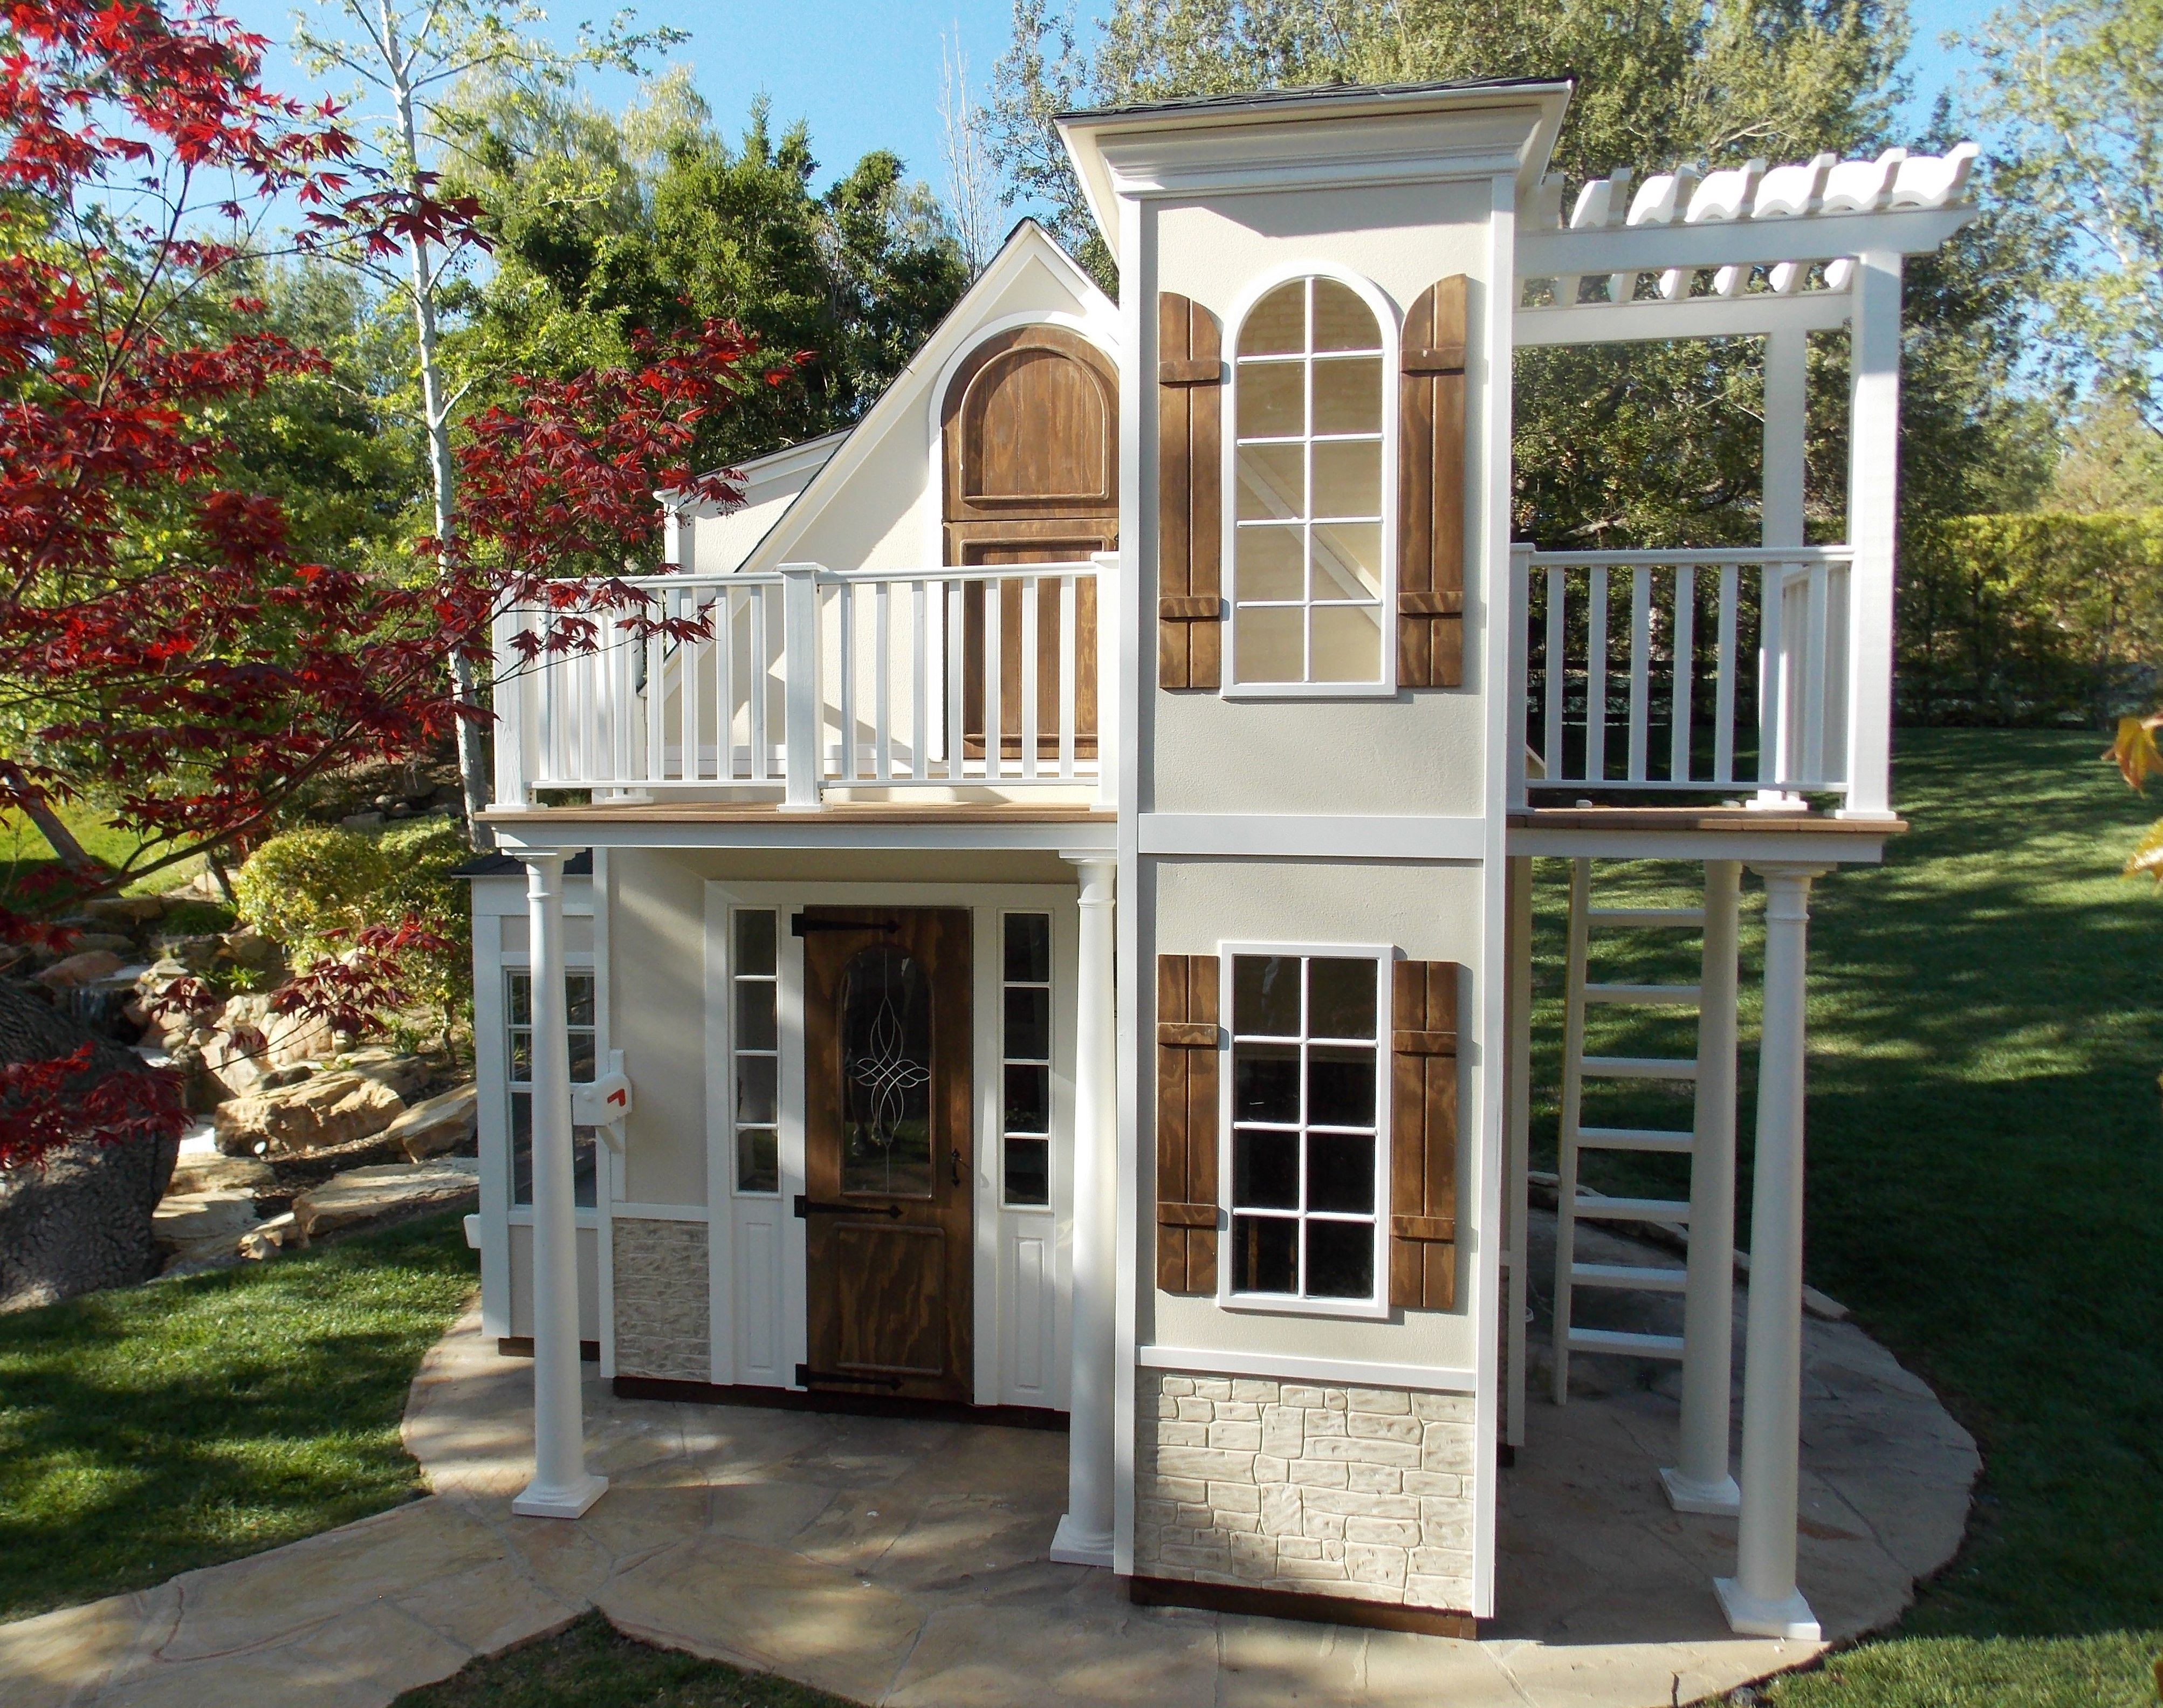 371 best extreme playhouses images on pinterest playhouse ideas